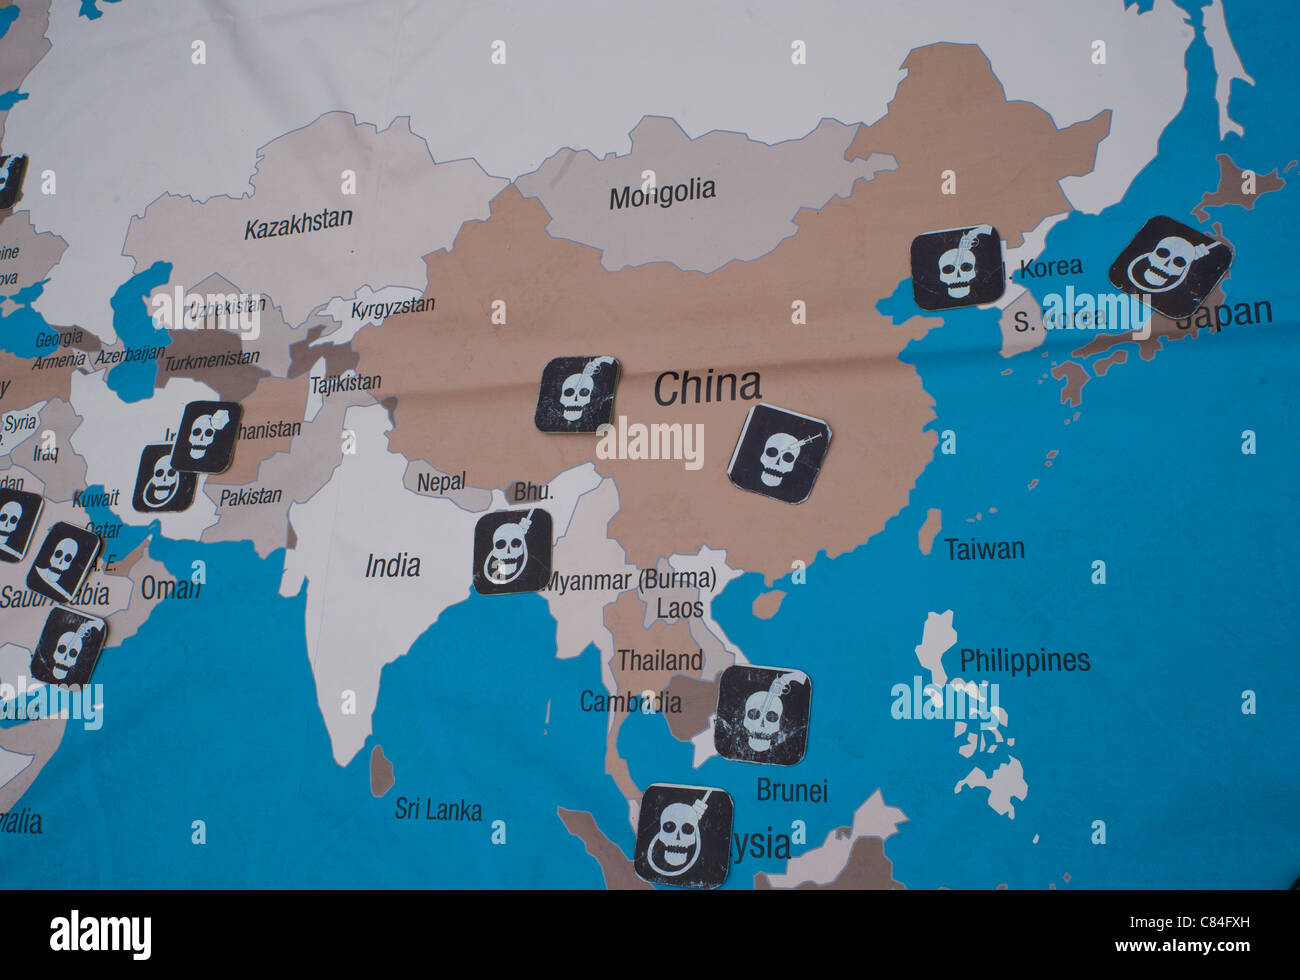 9th World Day against the Death Penalty: The Rally for abolition, World Map Showing Capital Punishment - Stock Image